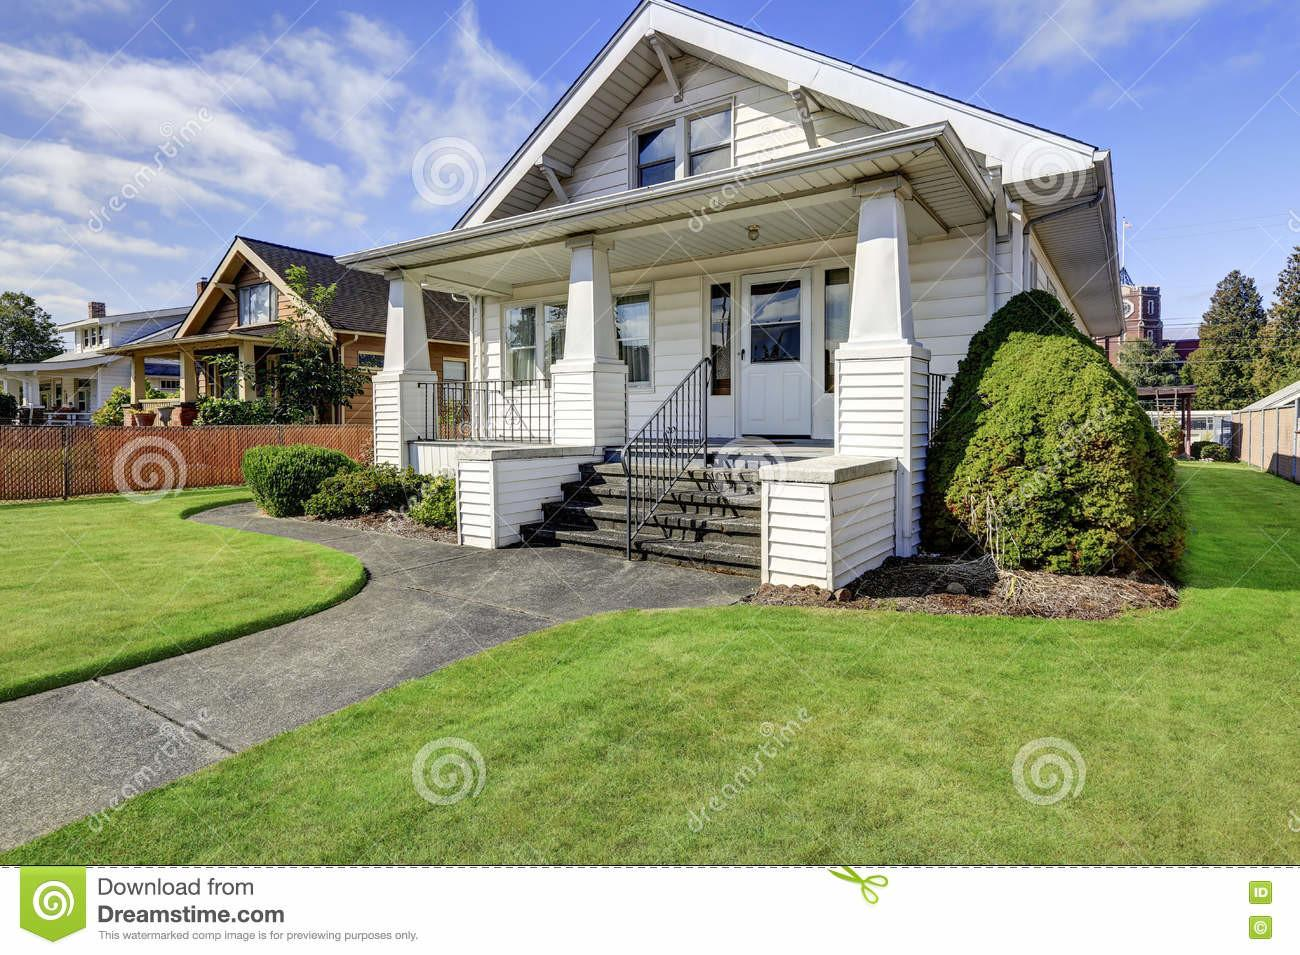 American Craftsman House Exterior Cozy Covered Porch